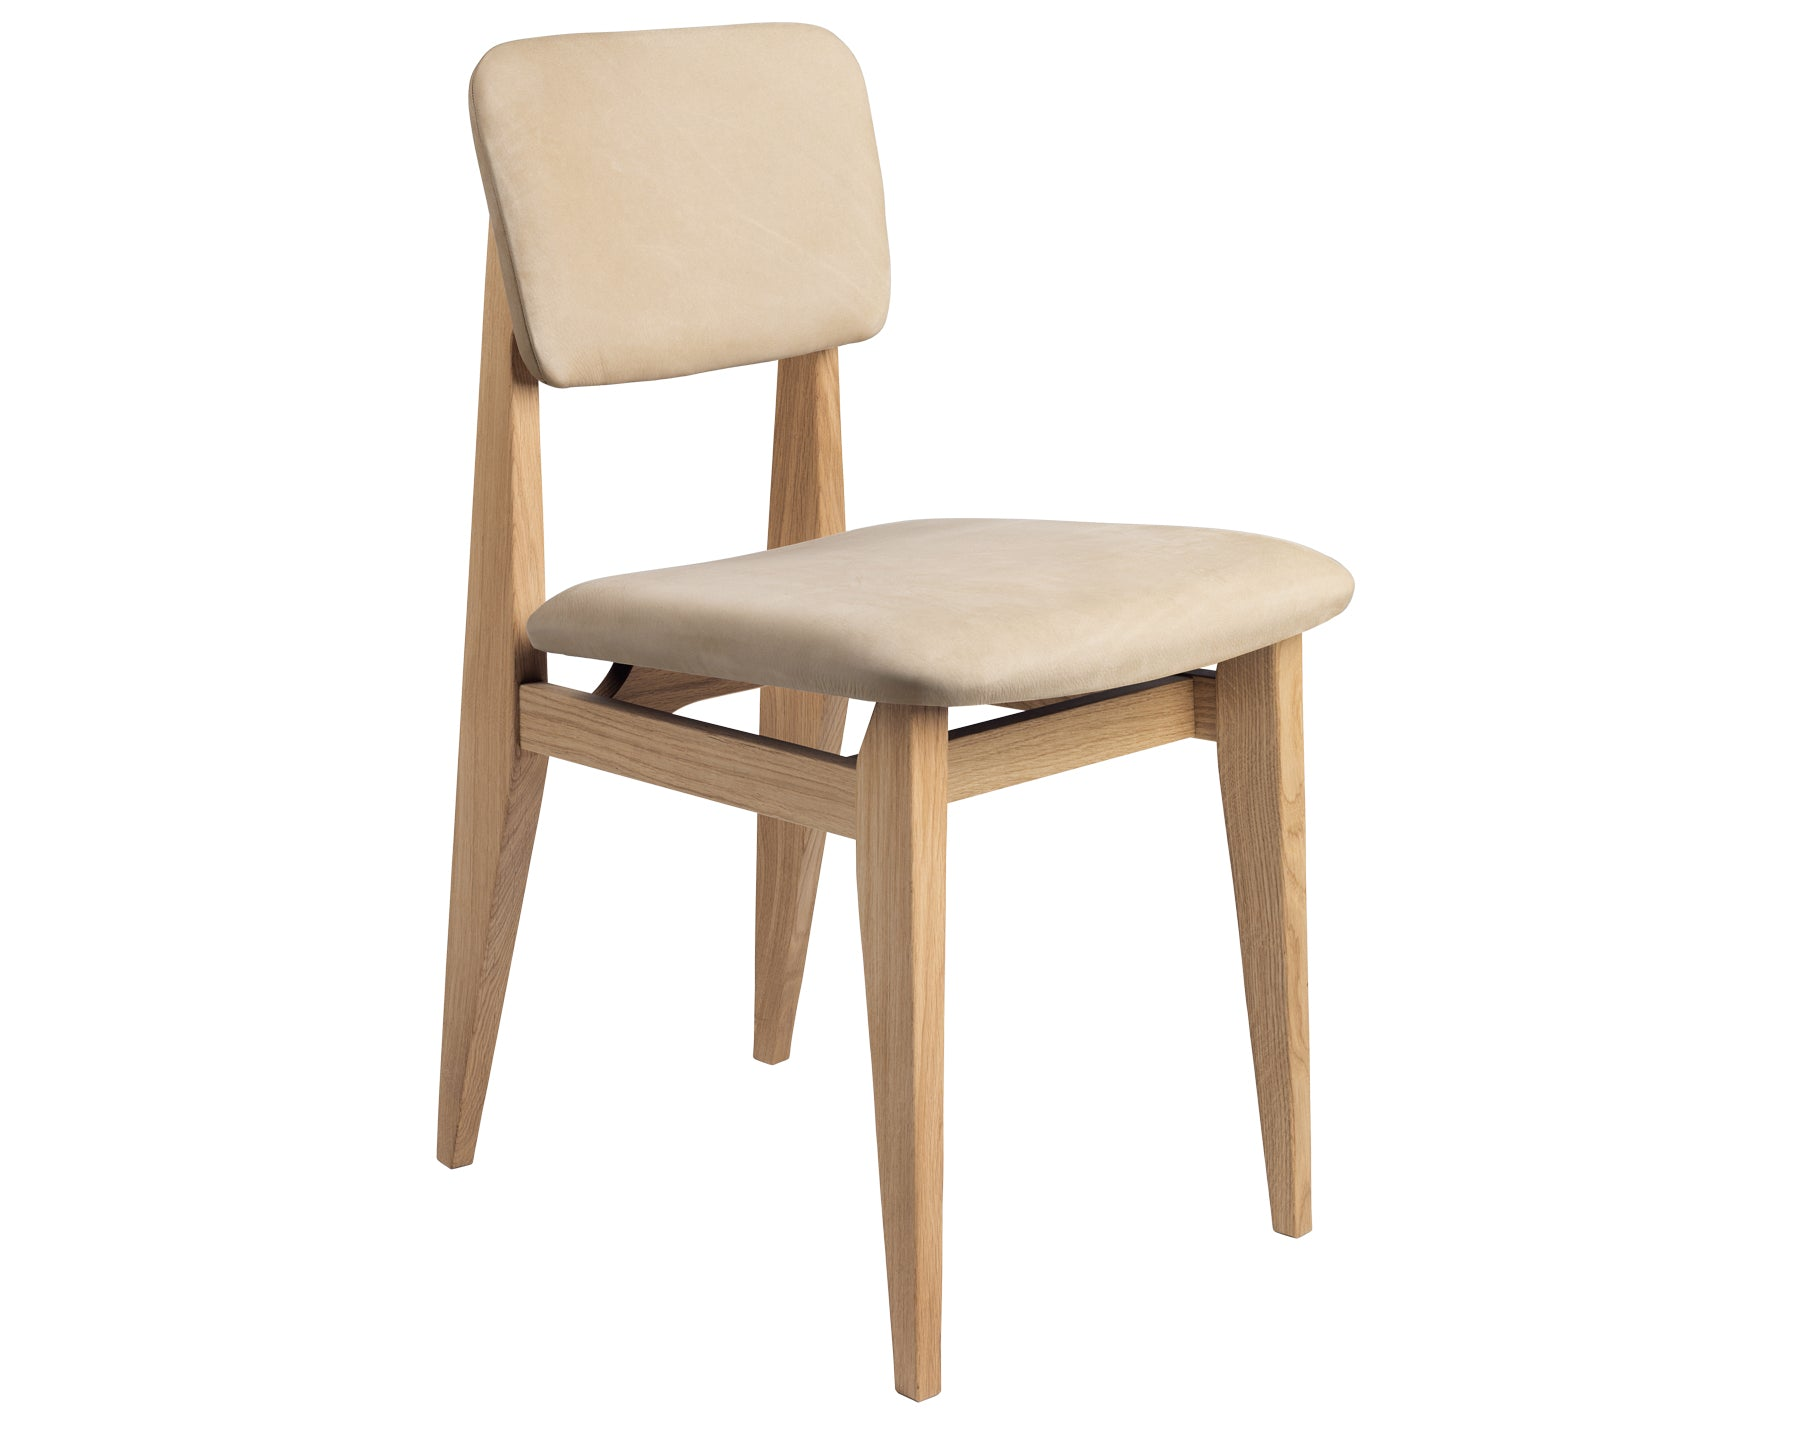 C-Chair Dining - Full Upholstered